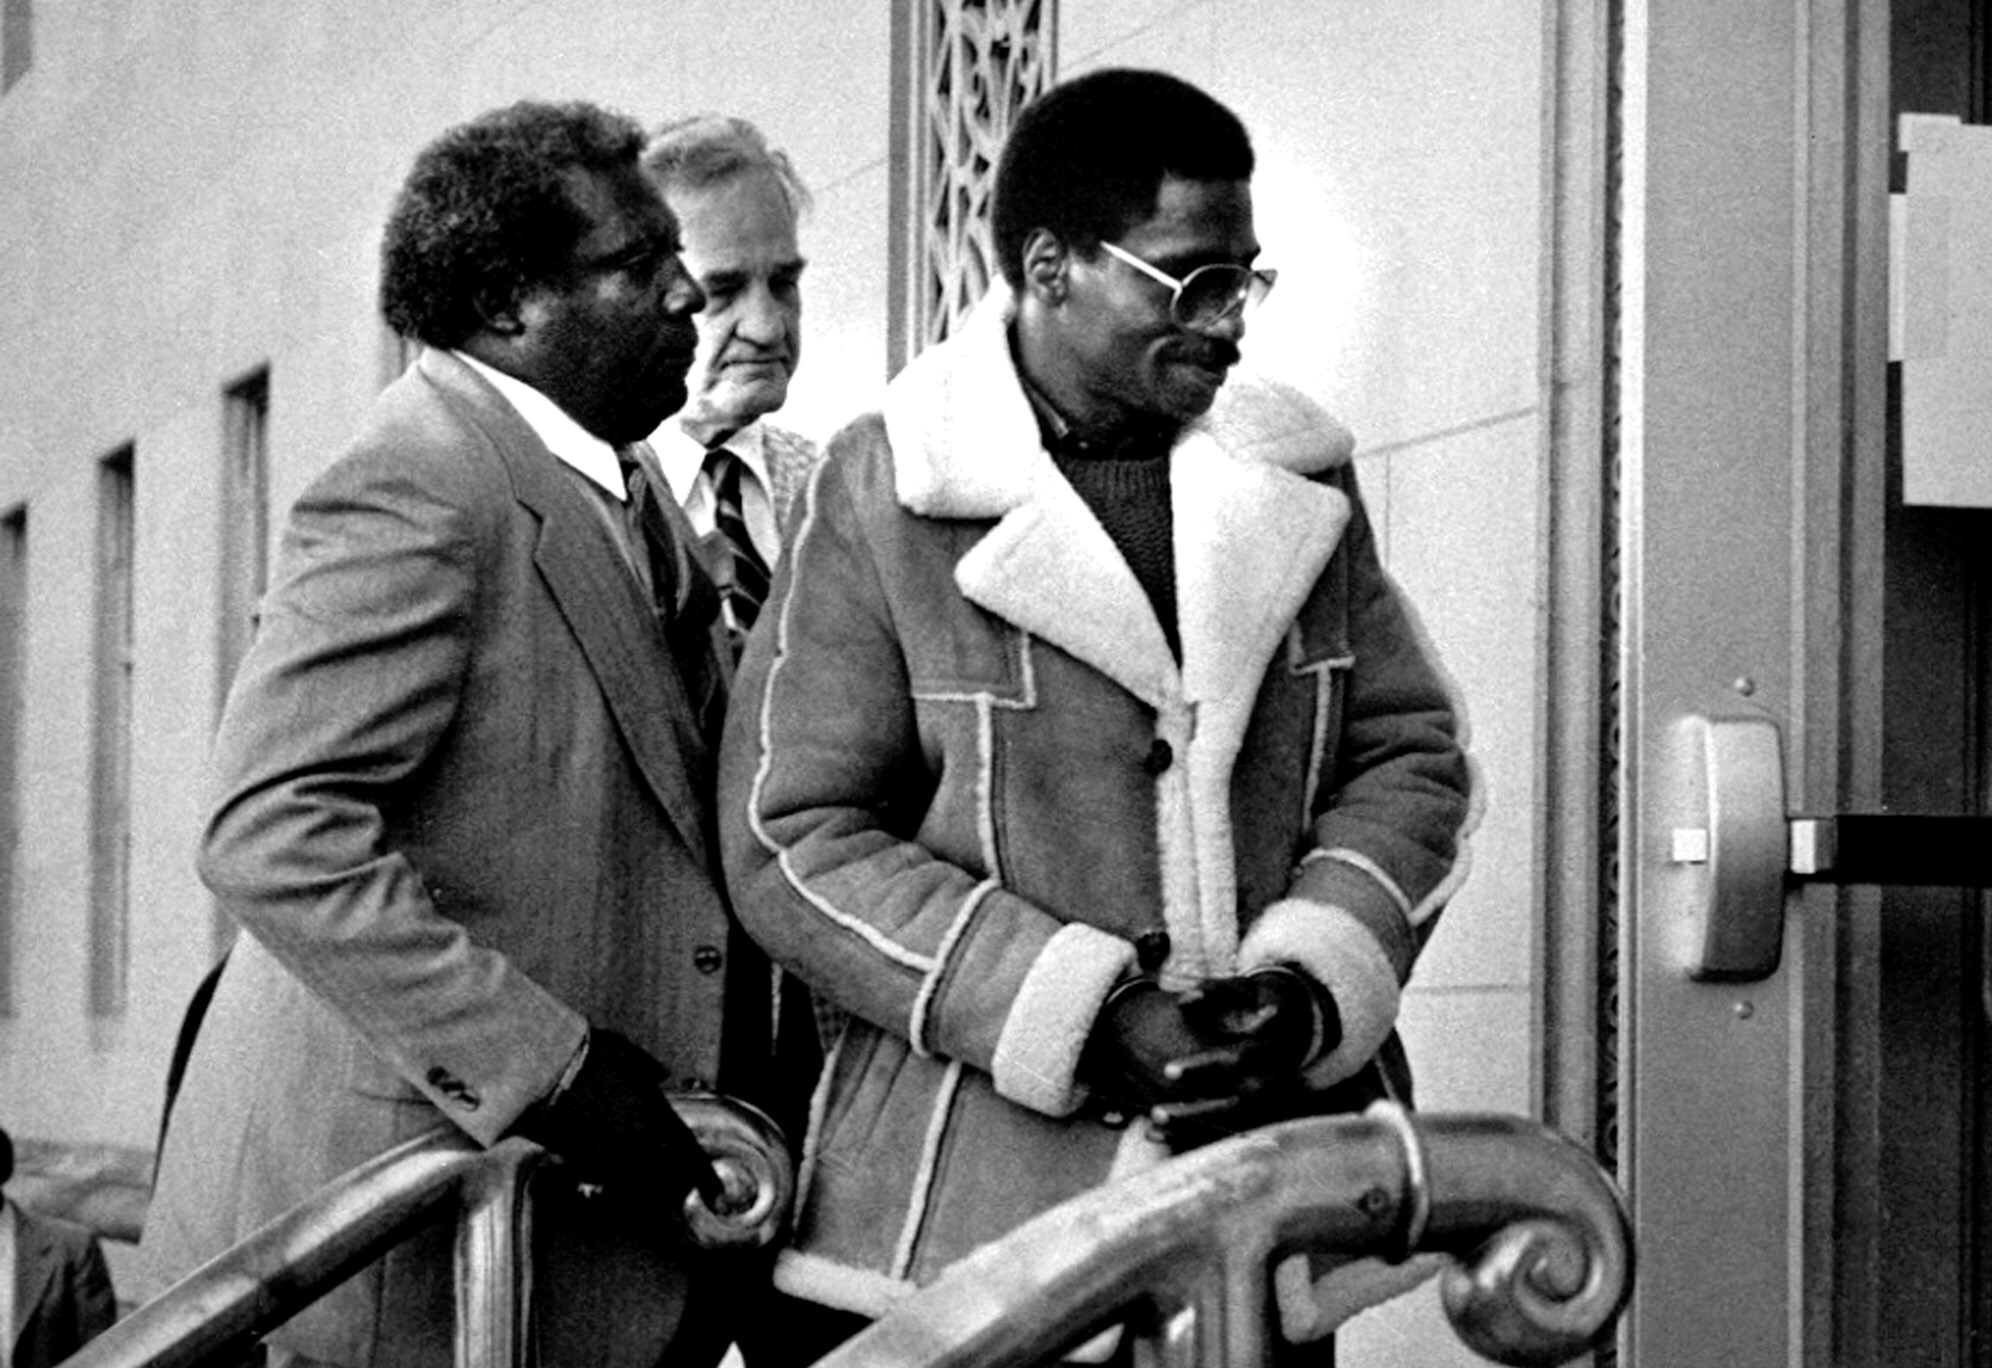 rubin hurricane carter State v carter, 363 a2d 366 (nj super ct app div 1976) rubin carter was  born in new jersey in 1937 at age 11, he stabbed a man with a boy scout knife .